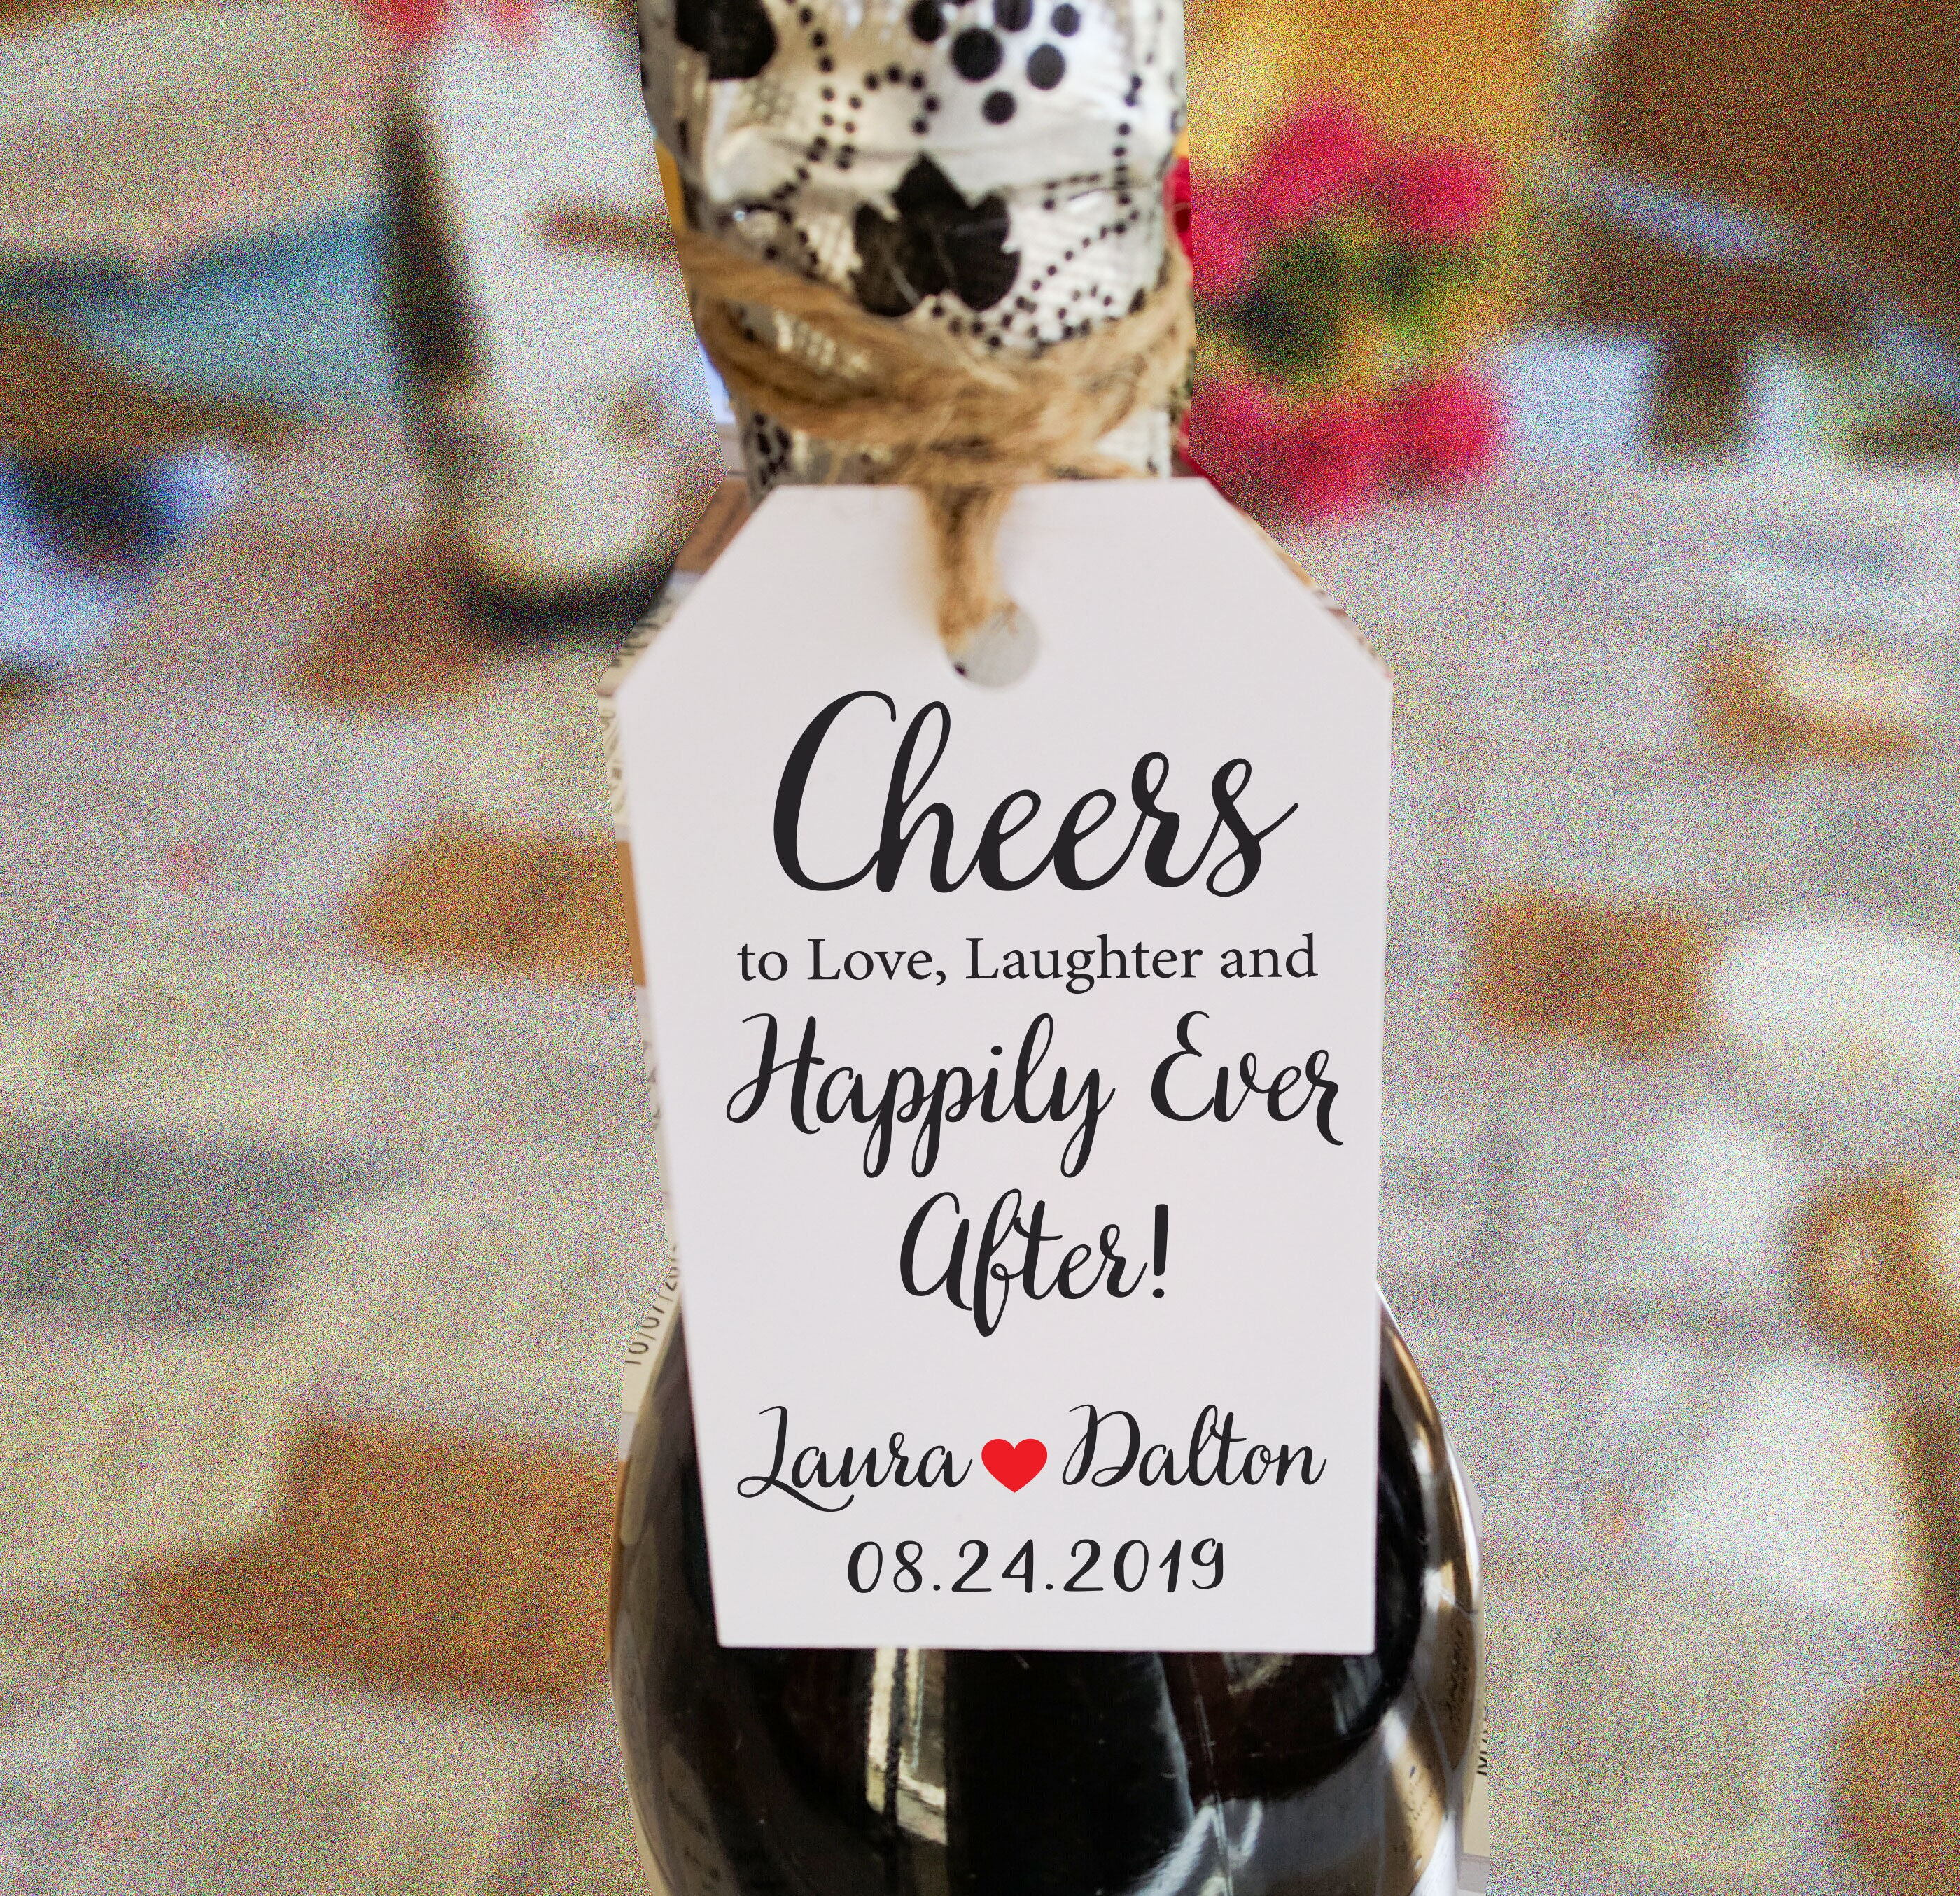 c8092fc59210 Cheers, Love Laughter, Favor Tags, Sweet Thank you Tags, Happily ...